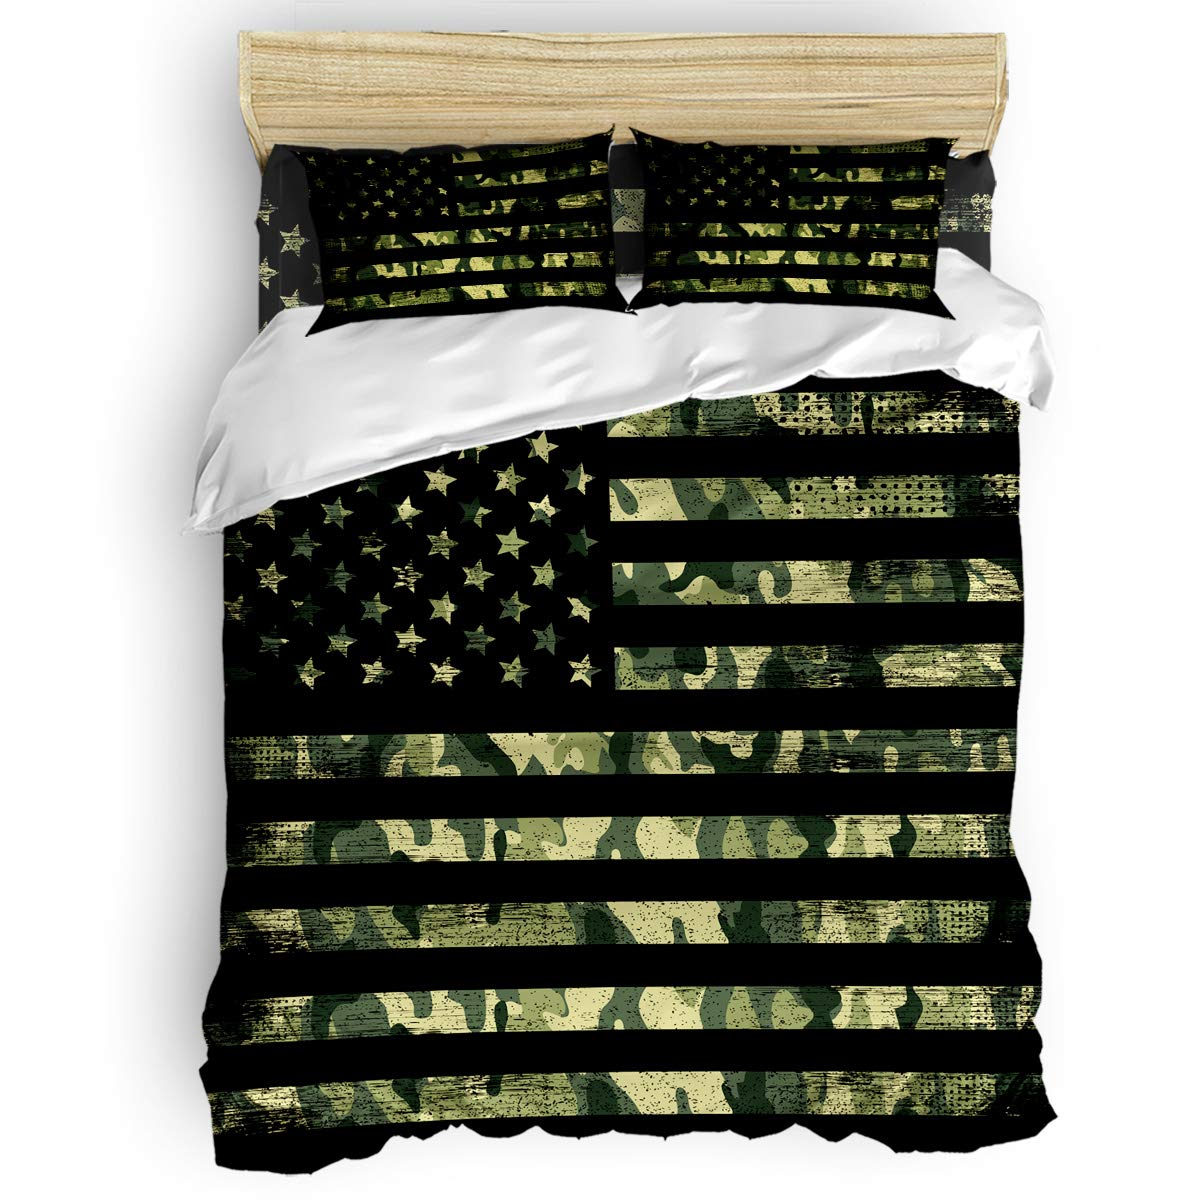 Libaoge 4 Pieces Bedding Sets, USA Flag Duvet Cover Set, Camouflage Themed,Include 1 Flat Sheet 1 Duvet Cover and 2 Pillow Cases, King Size